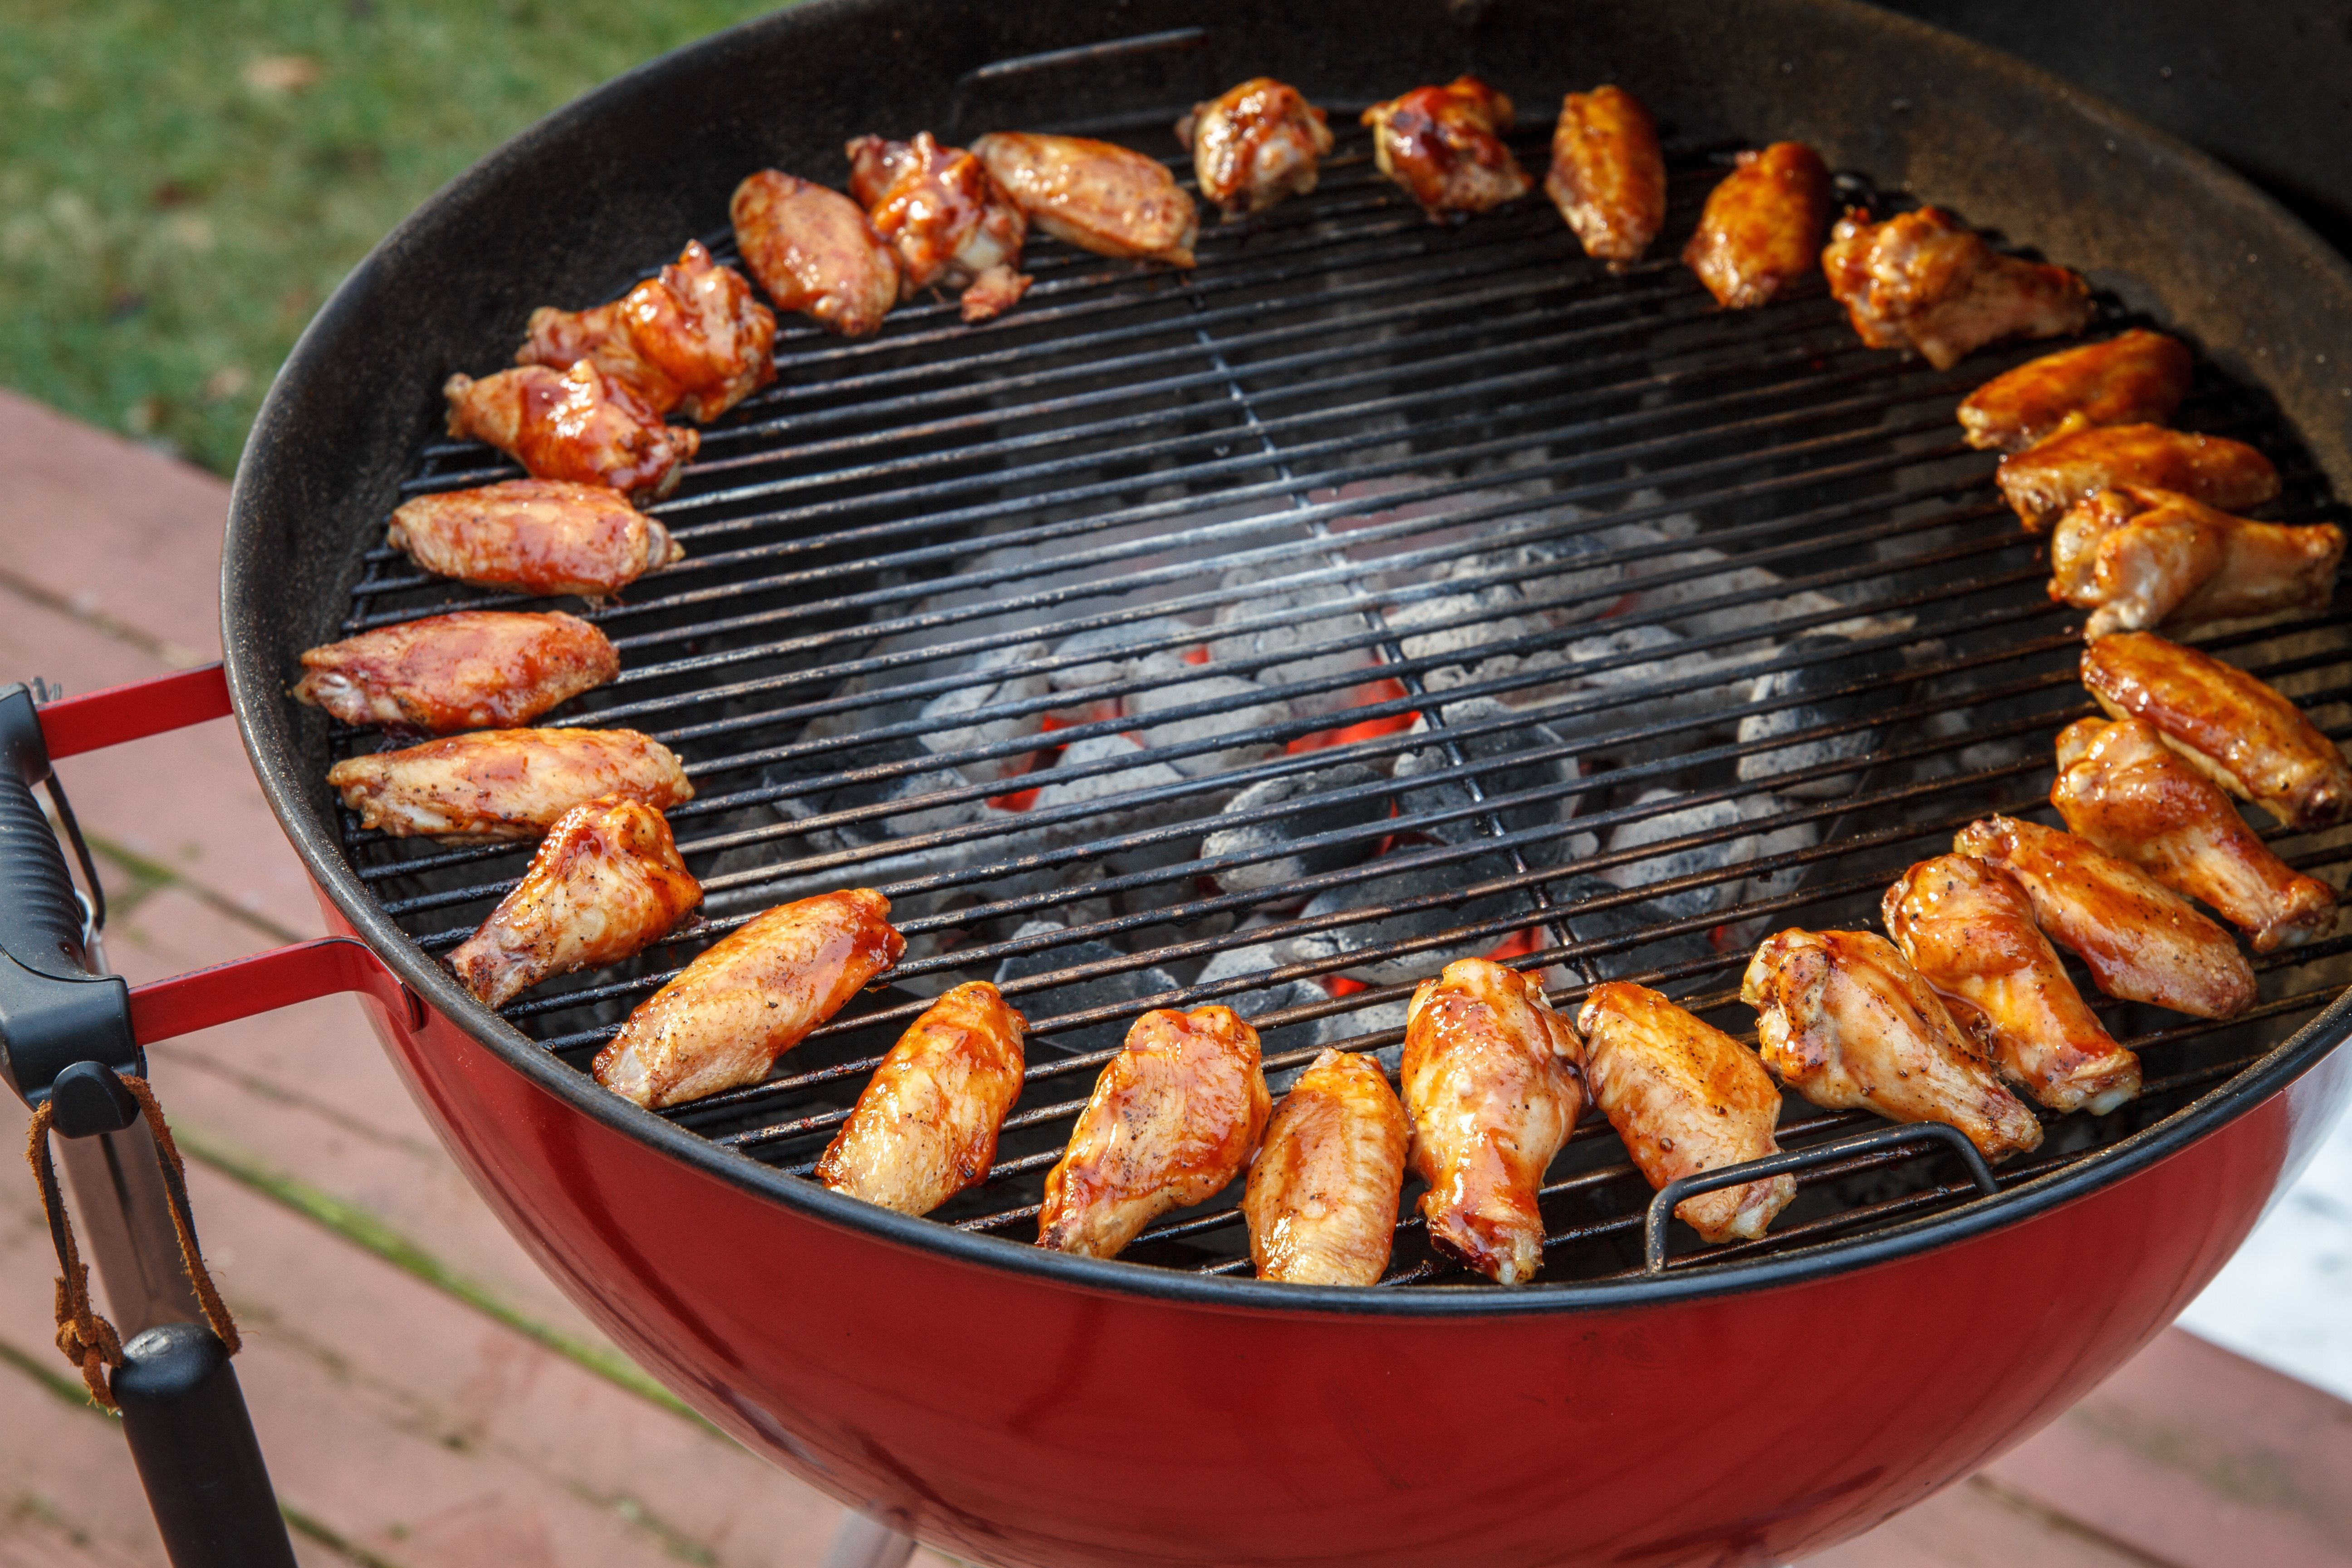 Charcoal Vs Gas Grill Which Is Better To Have Charcoal Grill Charcoal Grill Recipes Cooking On The Grill